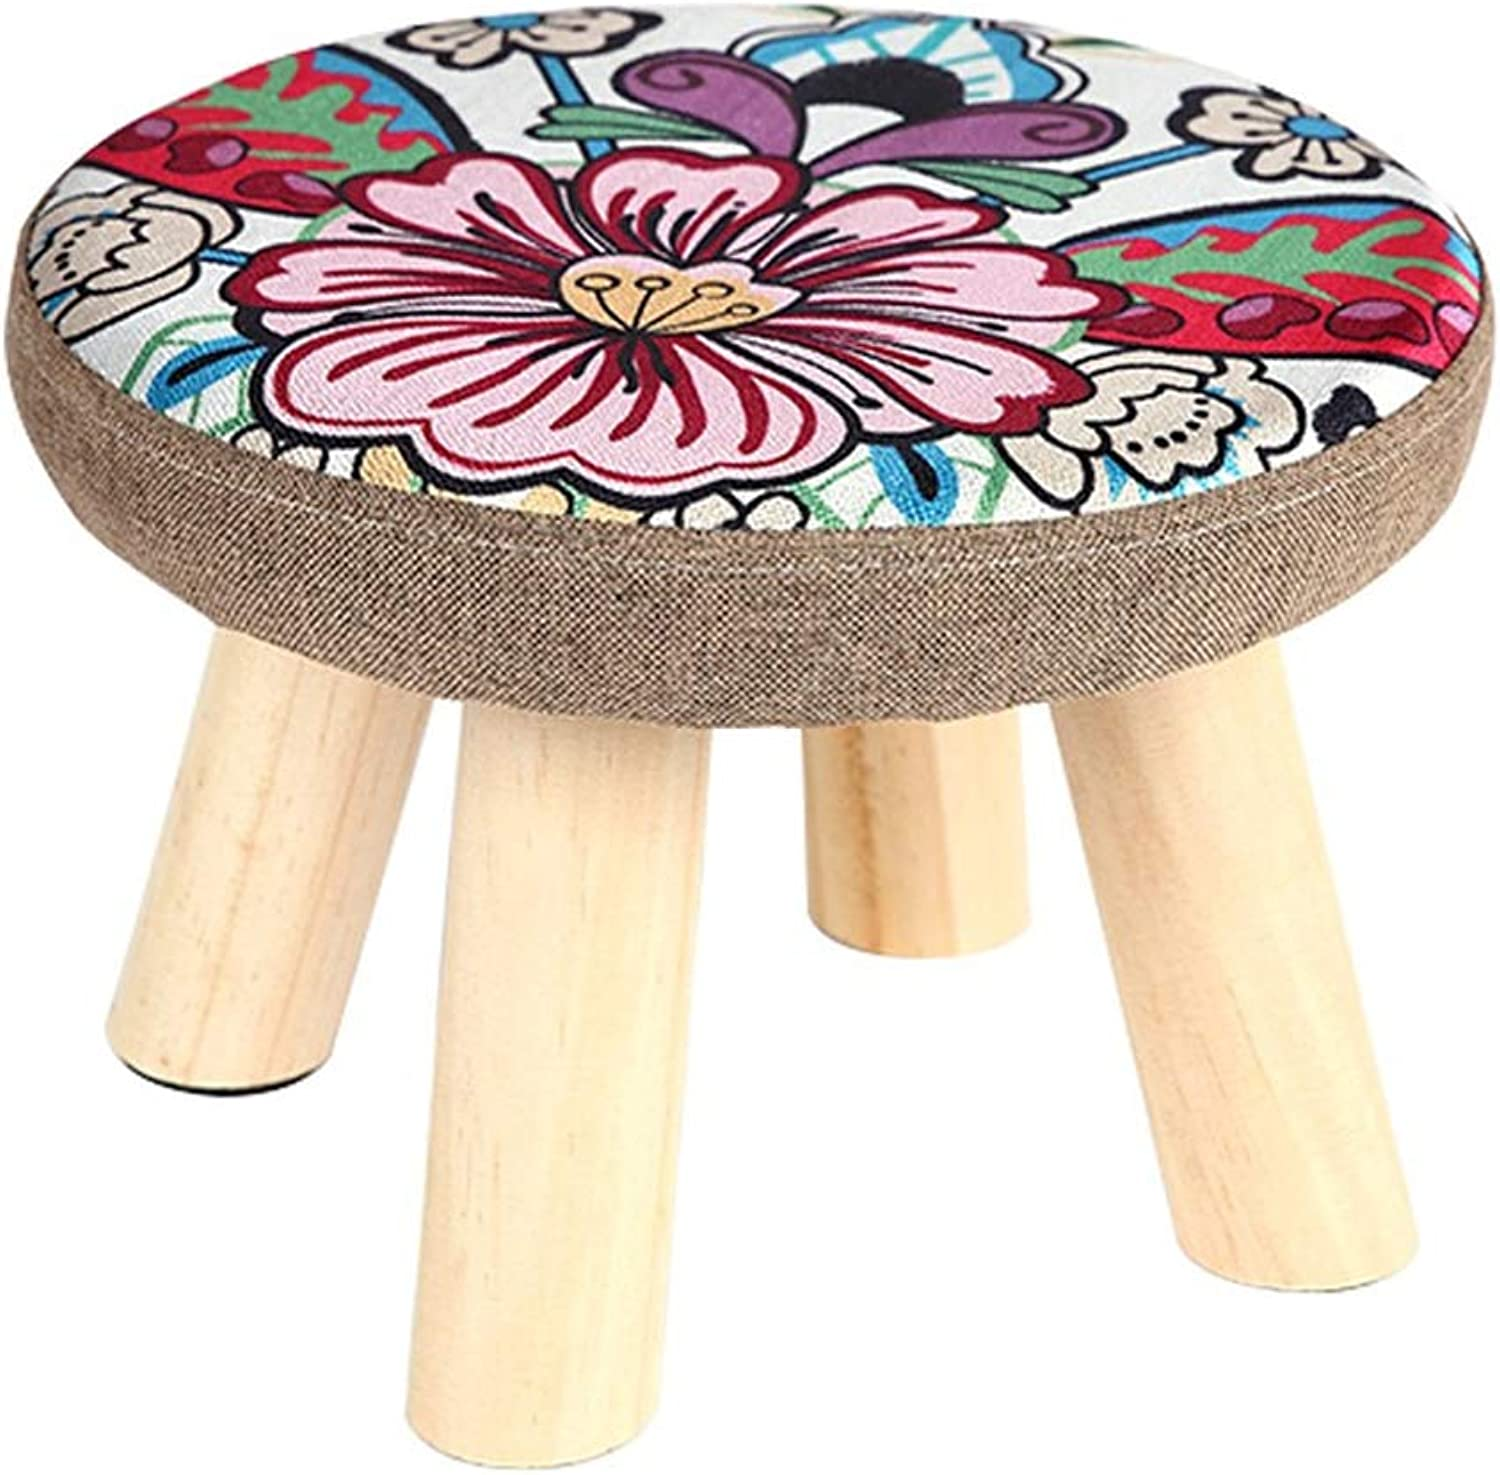 Small Stool-Solid Wood Stool Sofa Stool Creative shoes Bench Fabric Small Bench Stool Fashion Chair Home